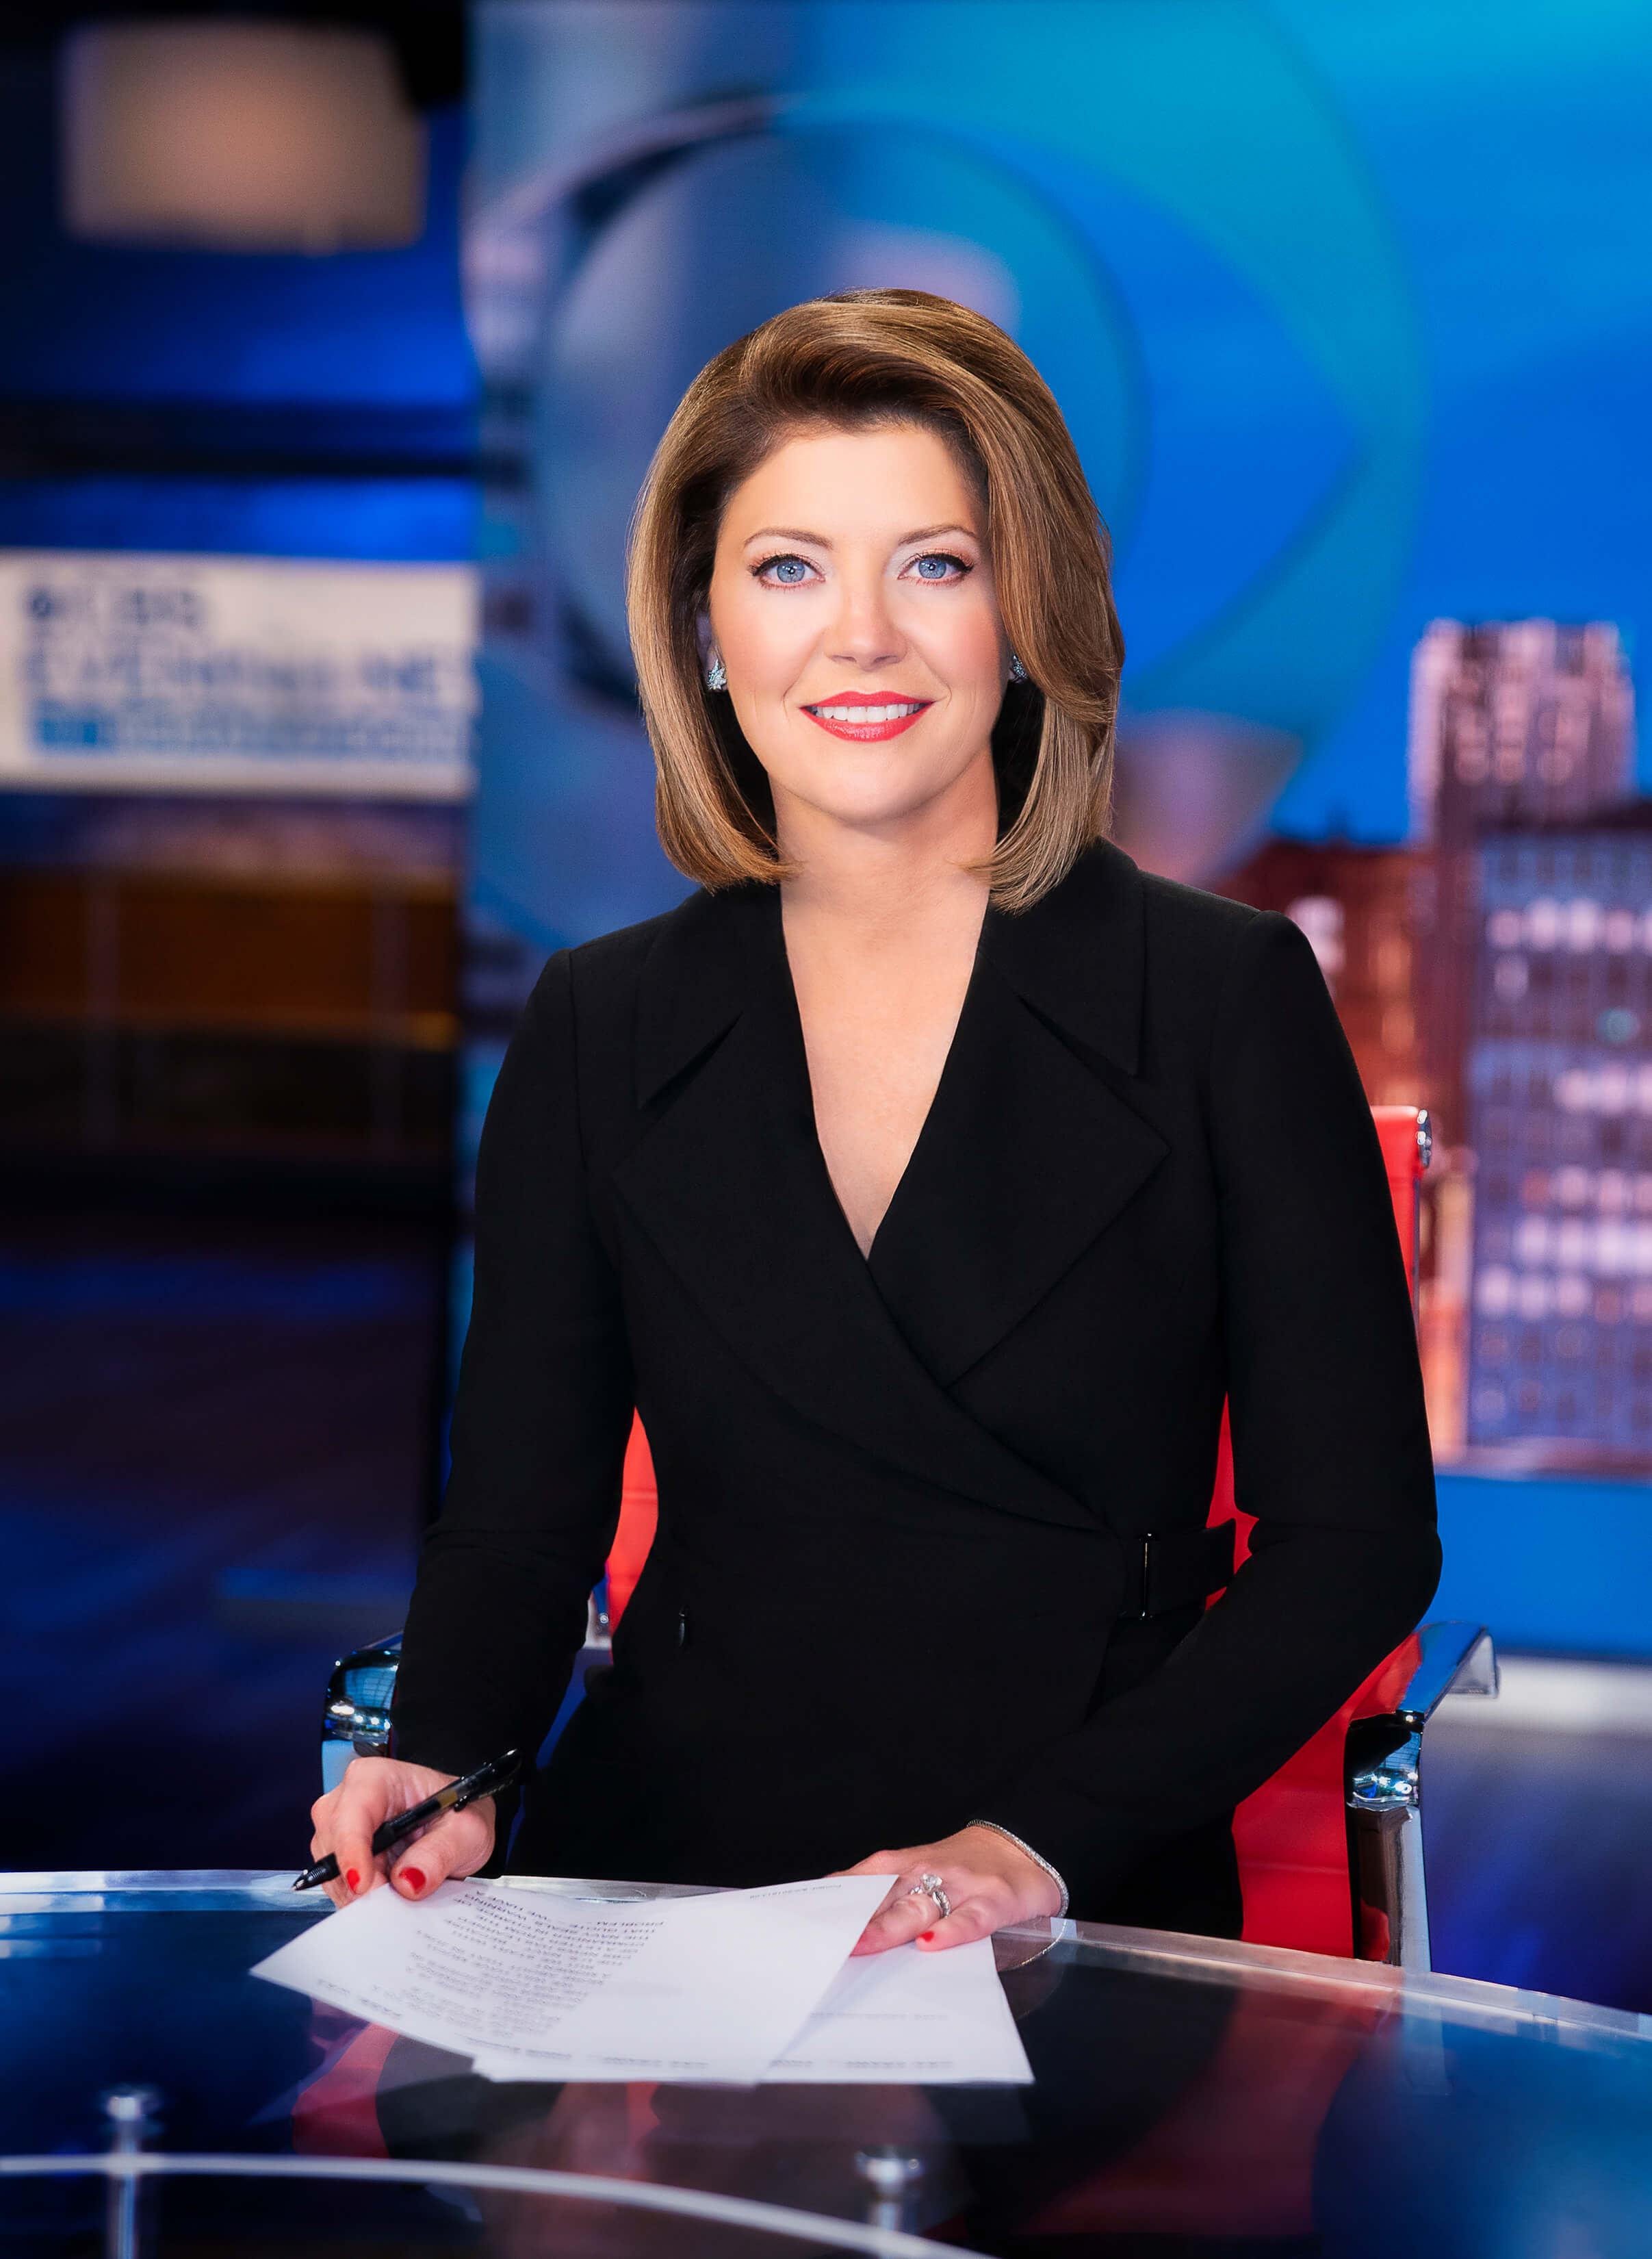 CBS's Norah O'Donnell on Her New Anchor Job and the 'Century